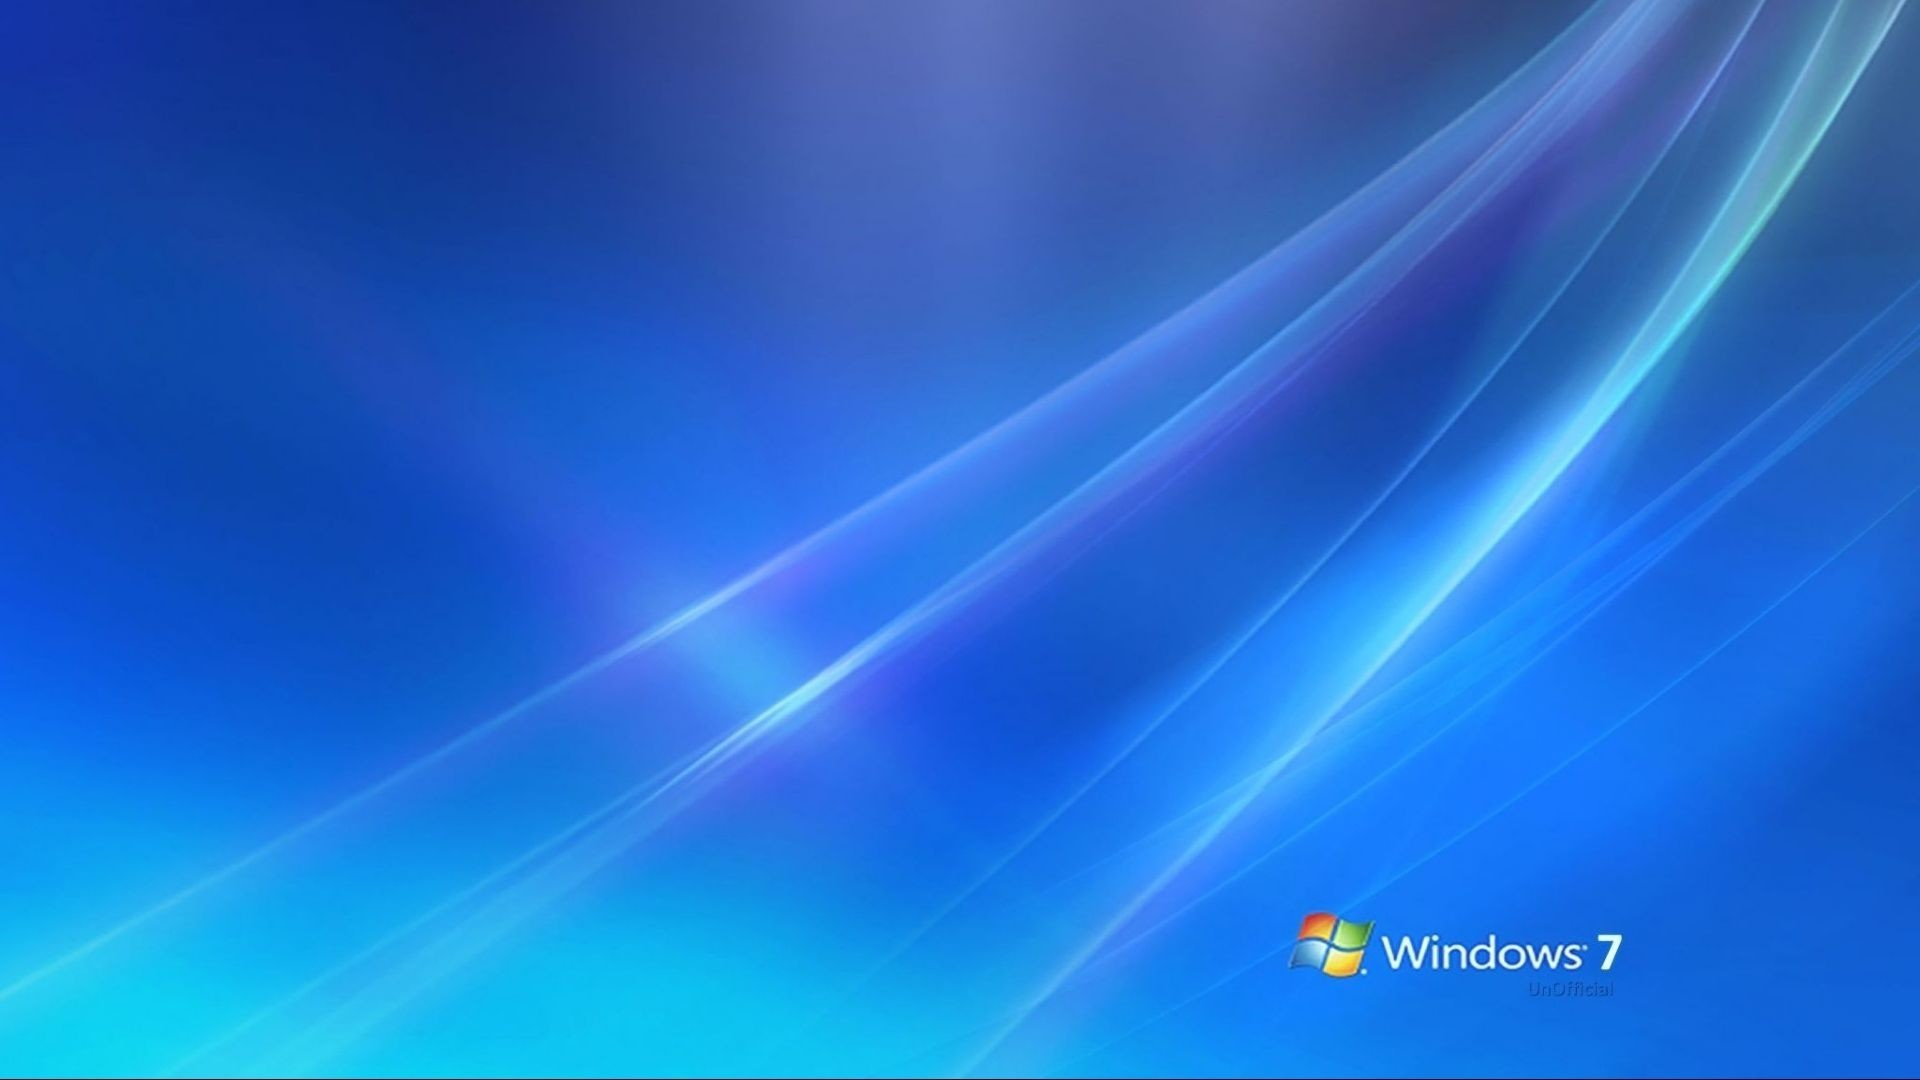 Dell Wallpaper Windows 10 72 Images